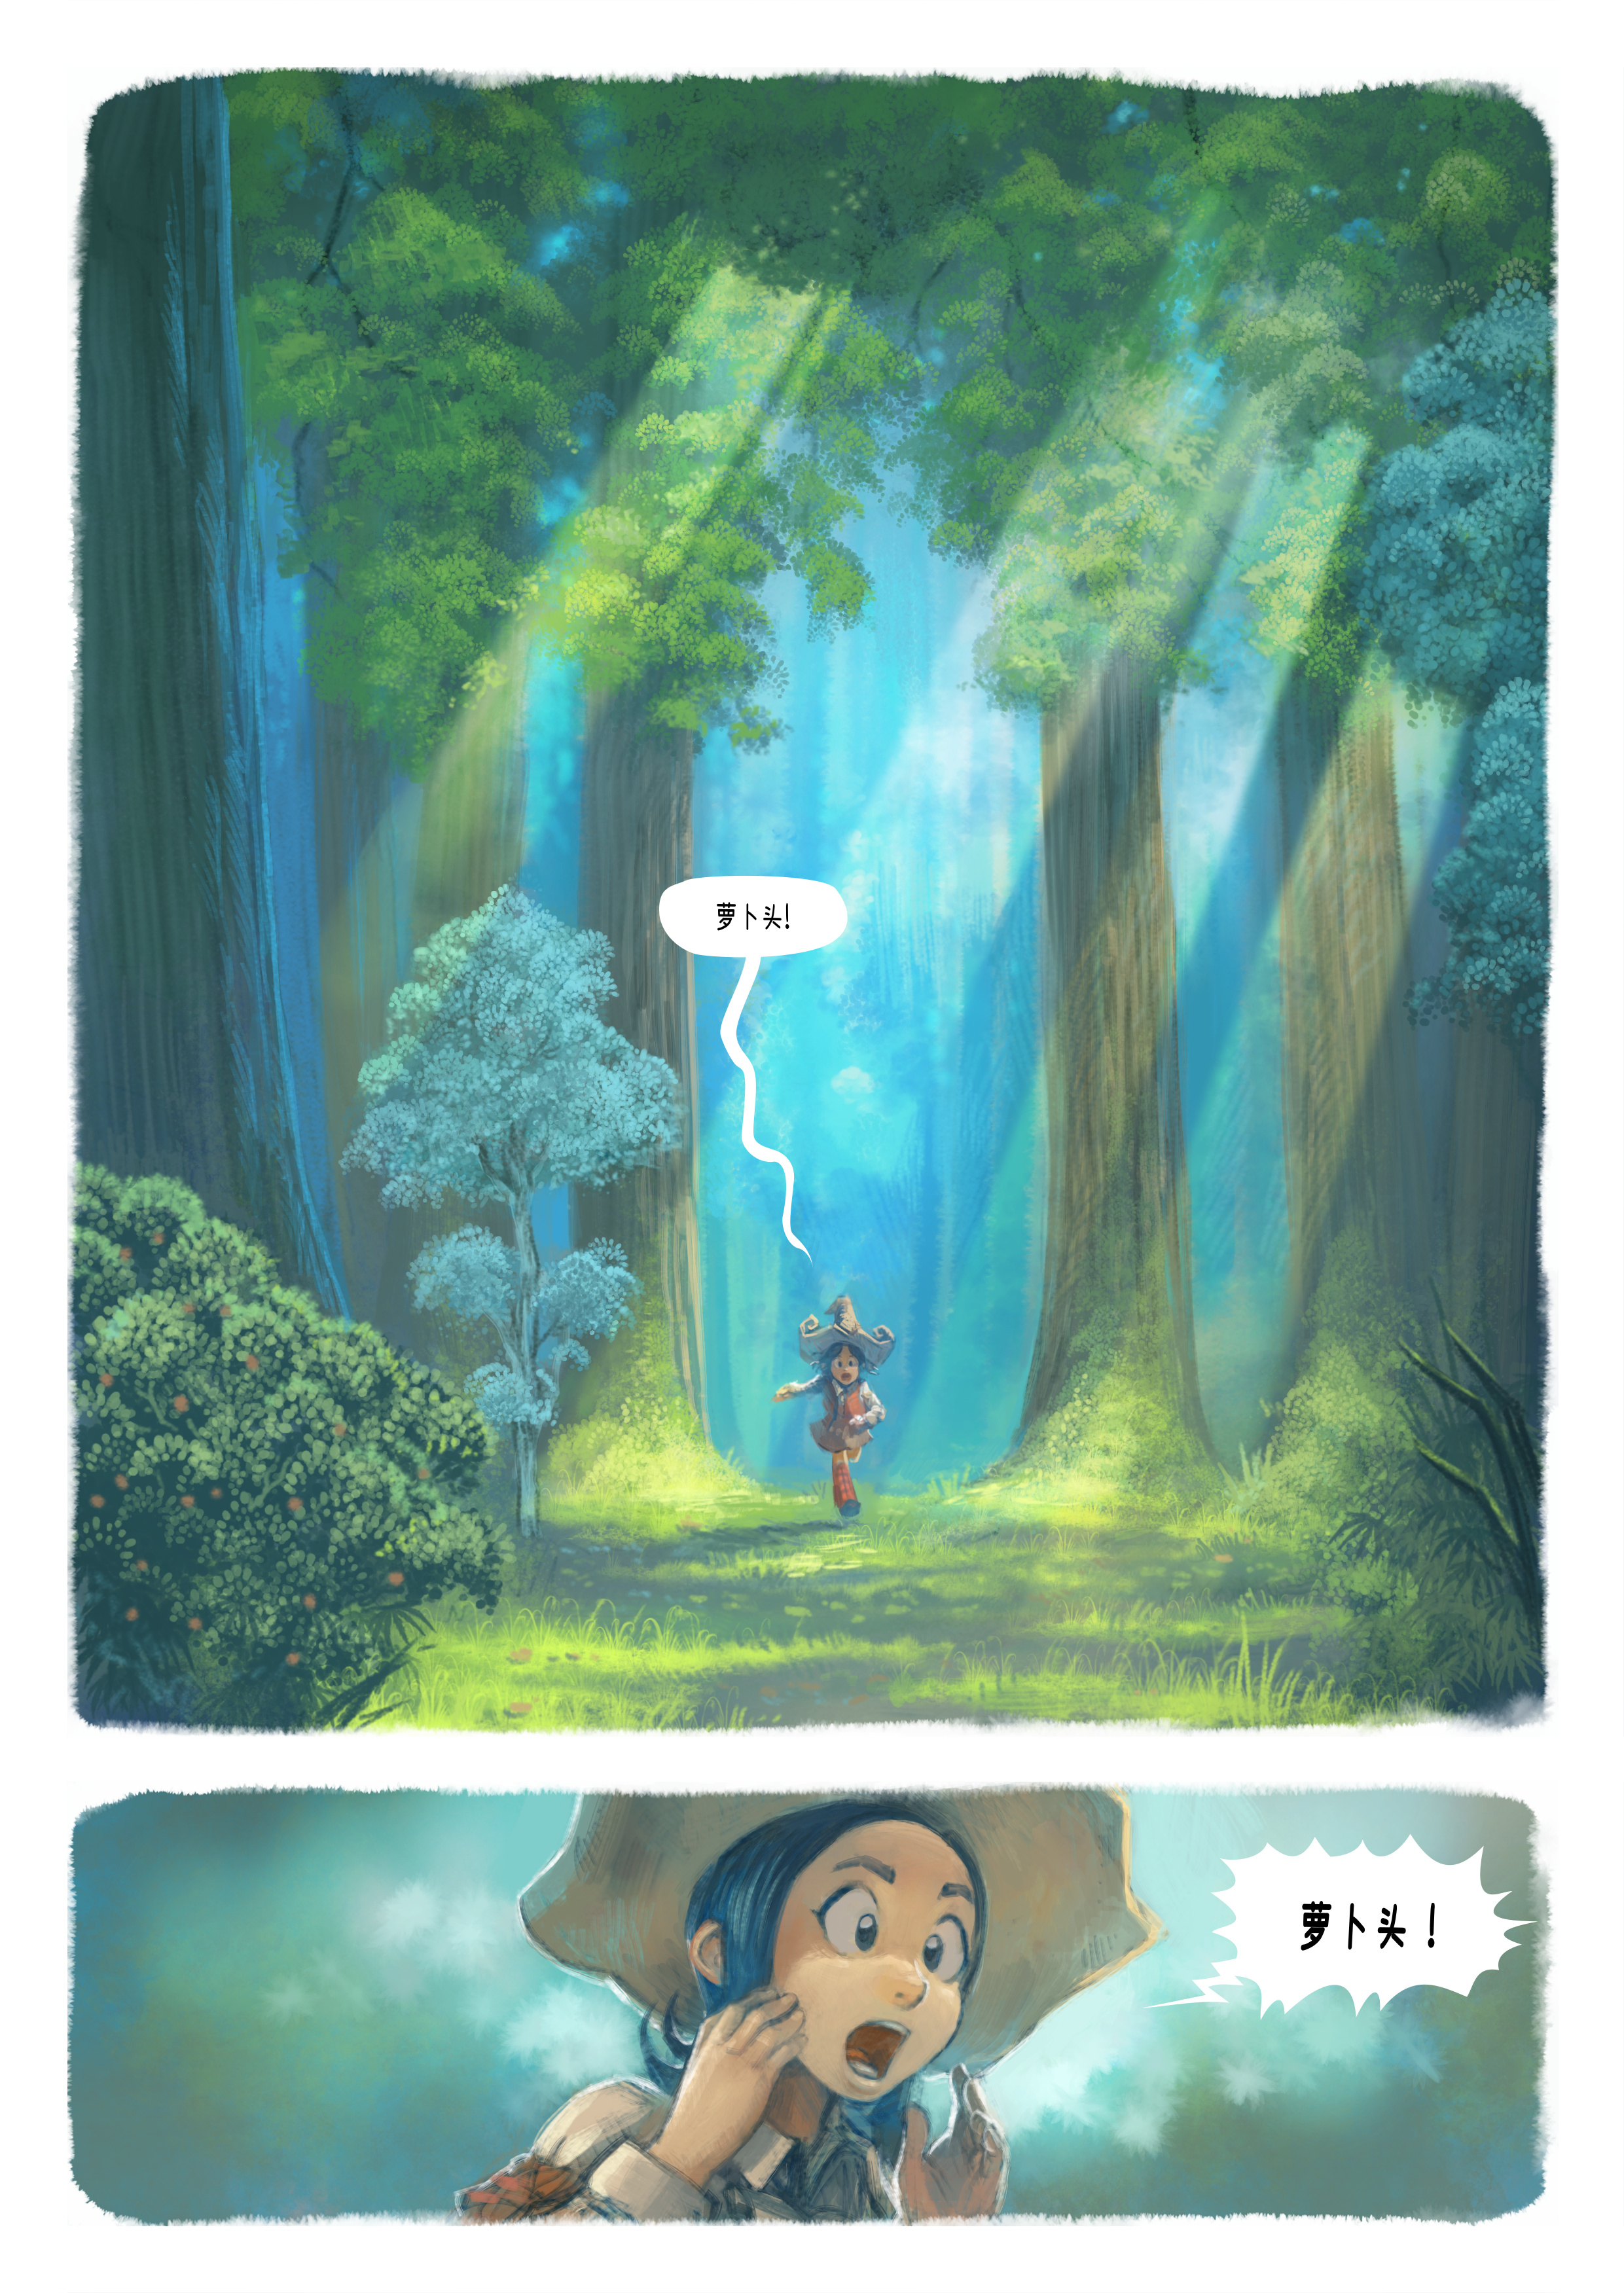 A webcomic page of Pepper&Carrot, 漫画全集 7 [cn], 页面 1